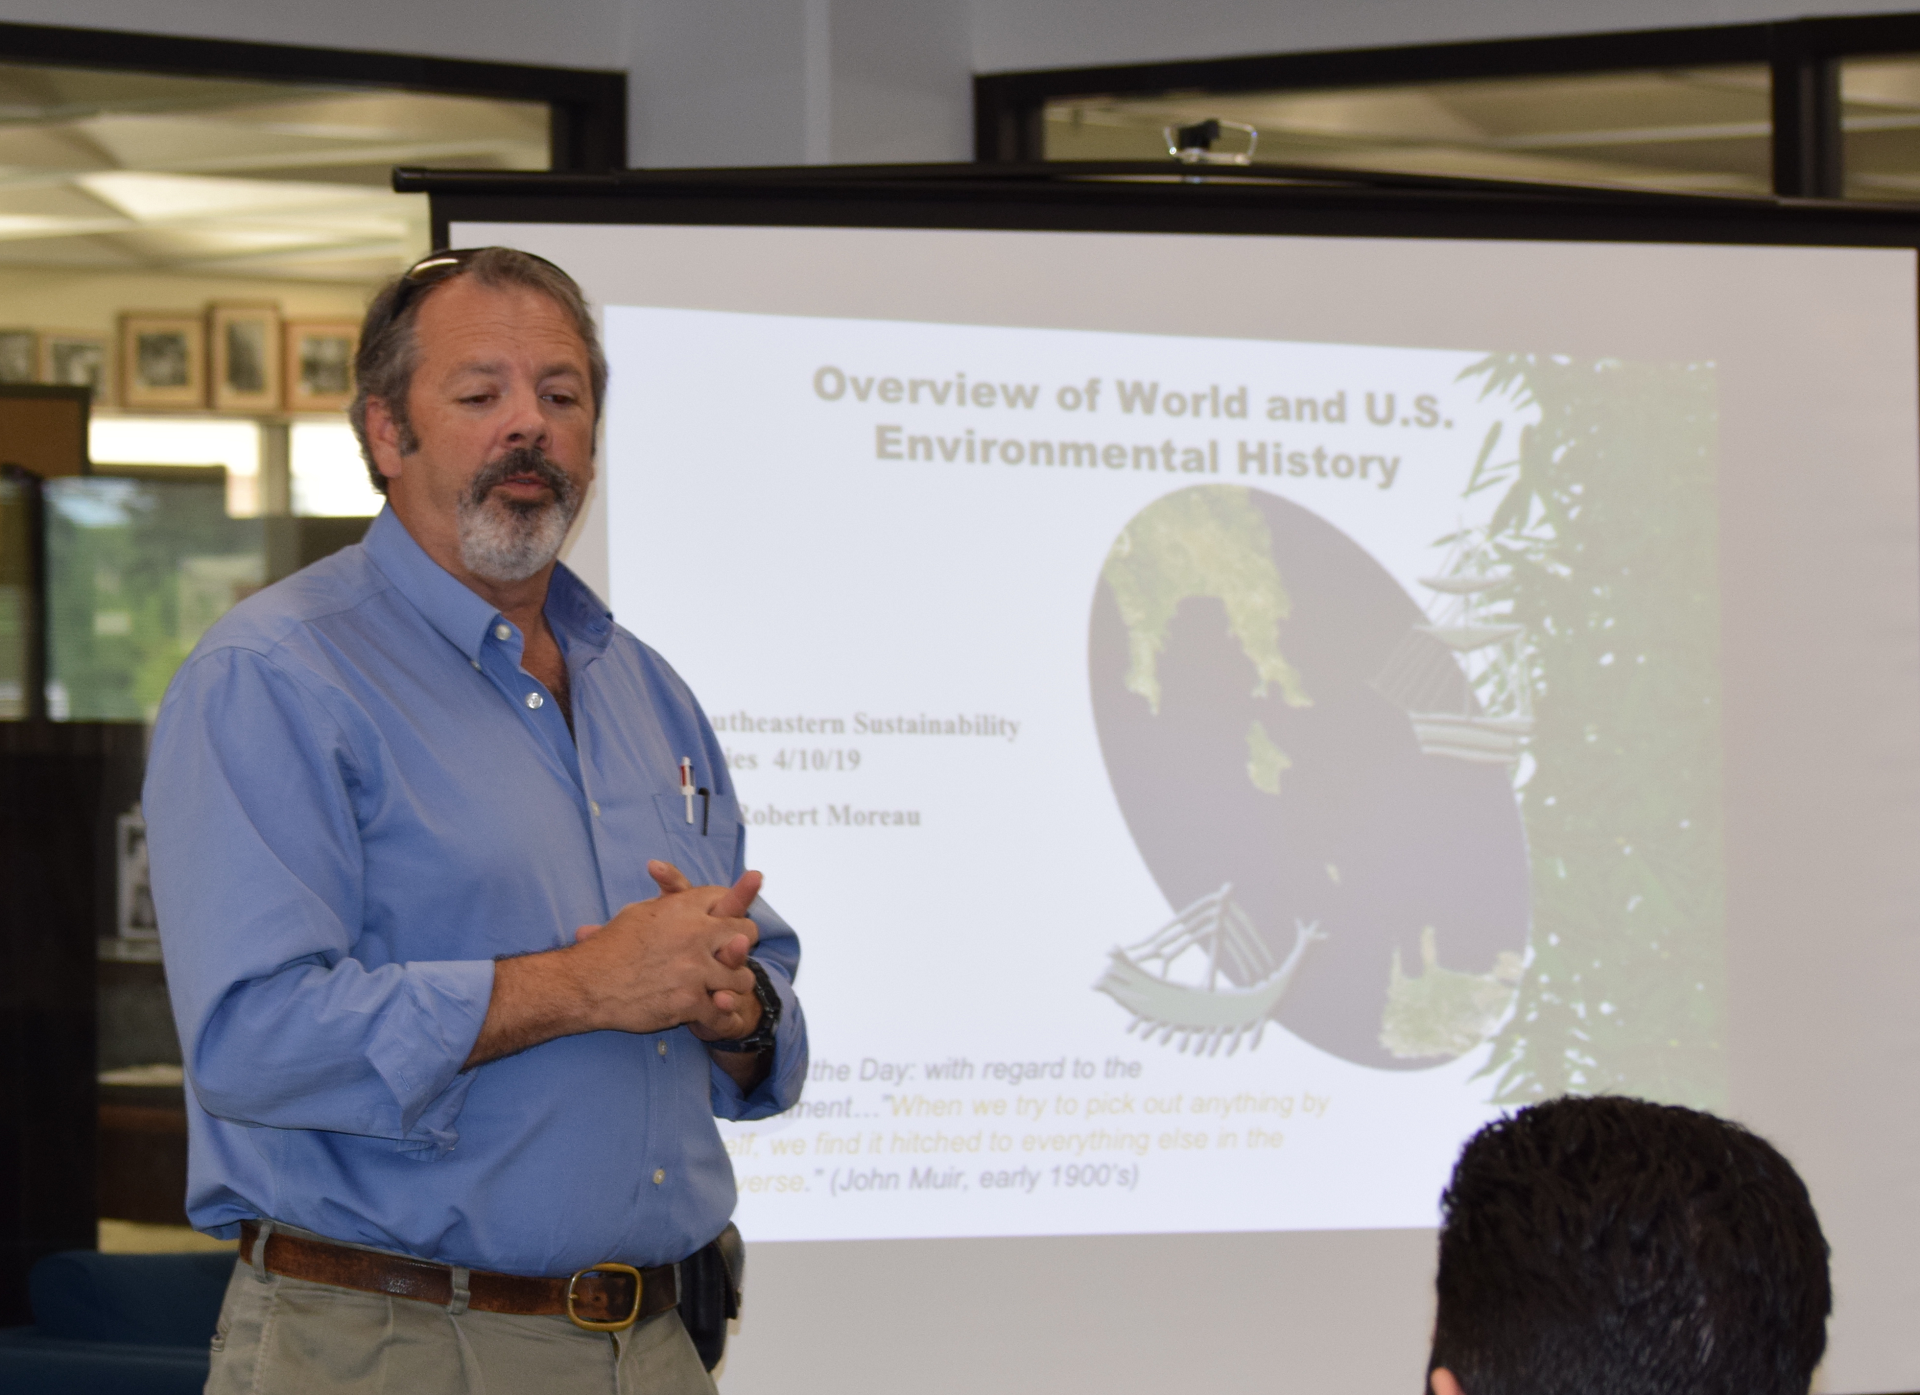 Dr. Robert Moreau discussed US Environmental History